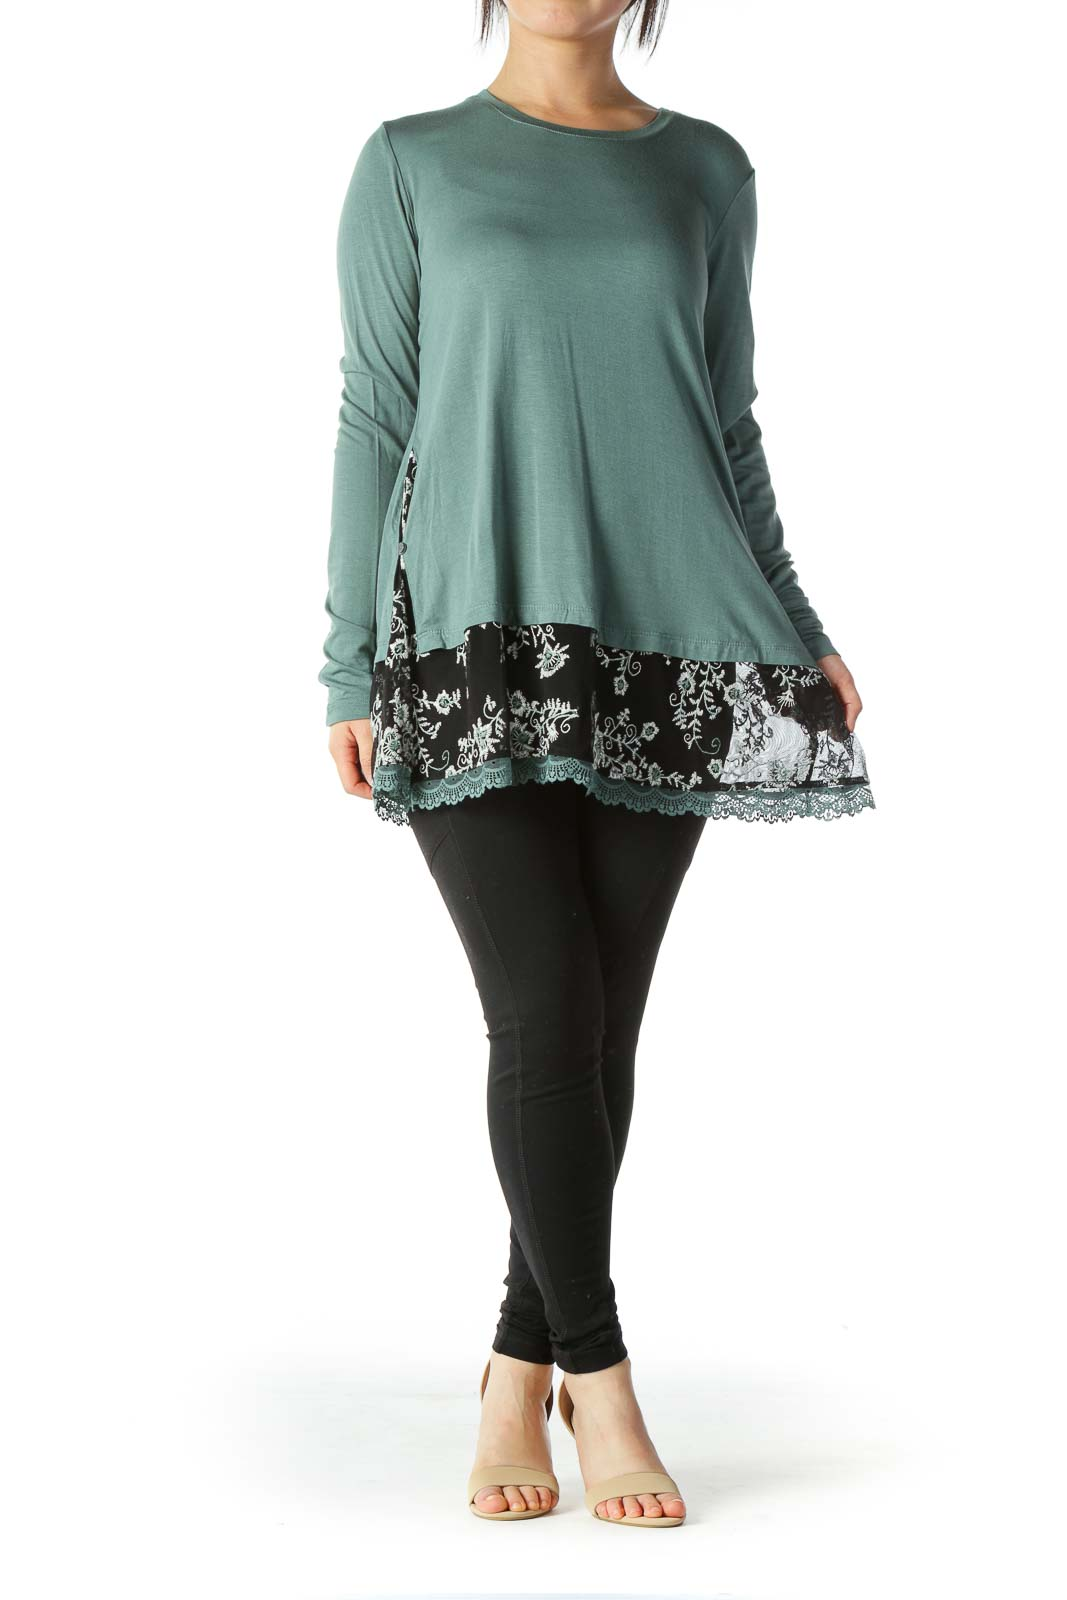 Turquoise Floral Embroidered Long Sleeve Top Front